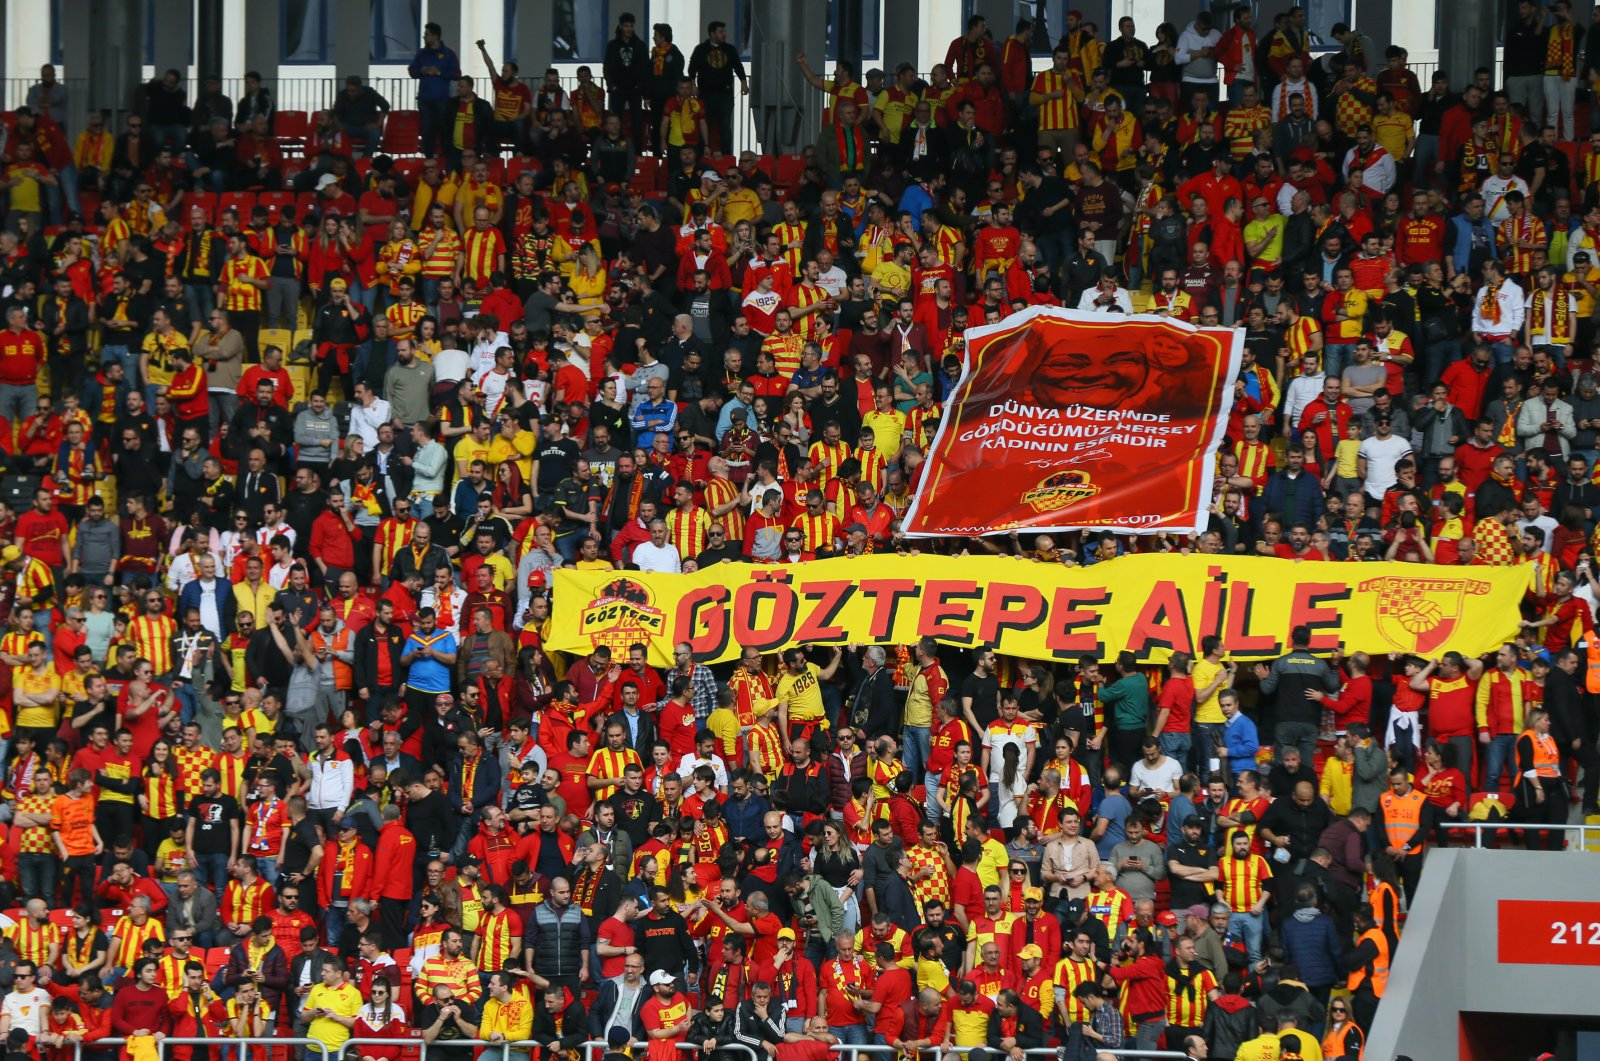 Göztepe fans fill the stands during a match against Başakşehir, March 7, 2020. (AA Photo)